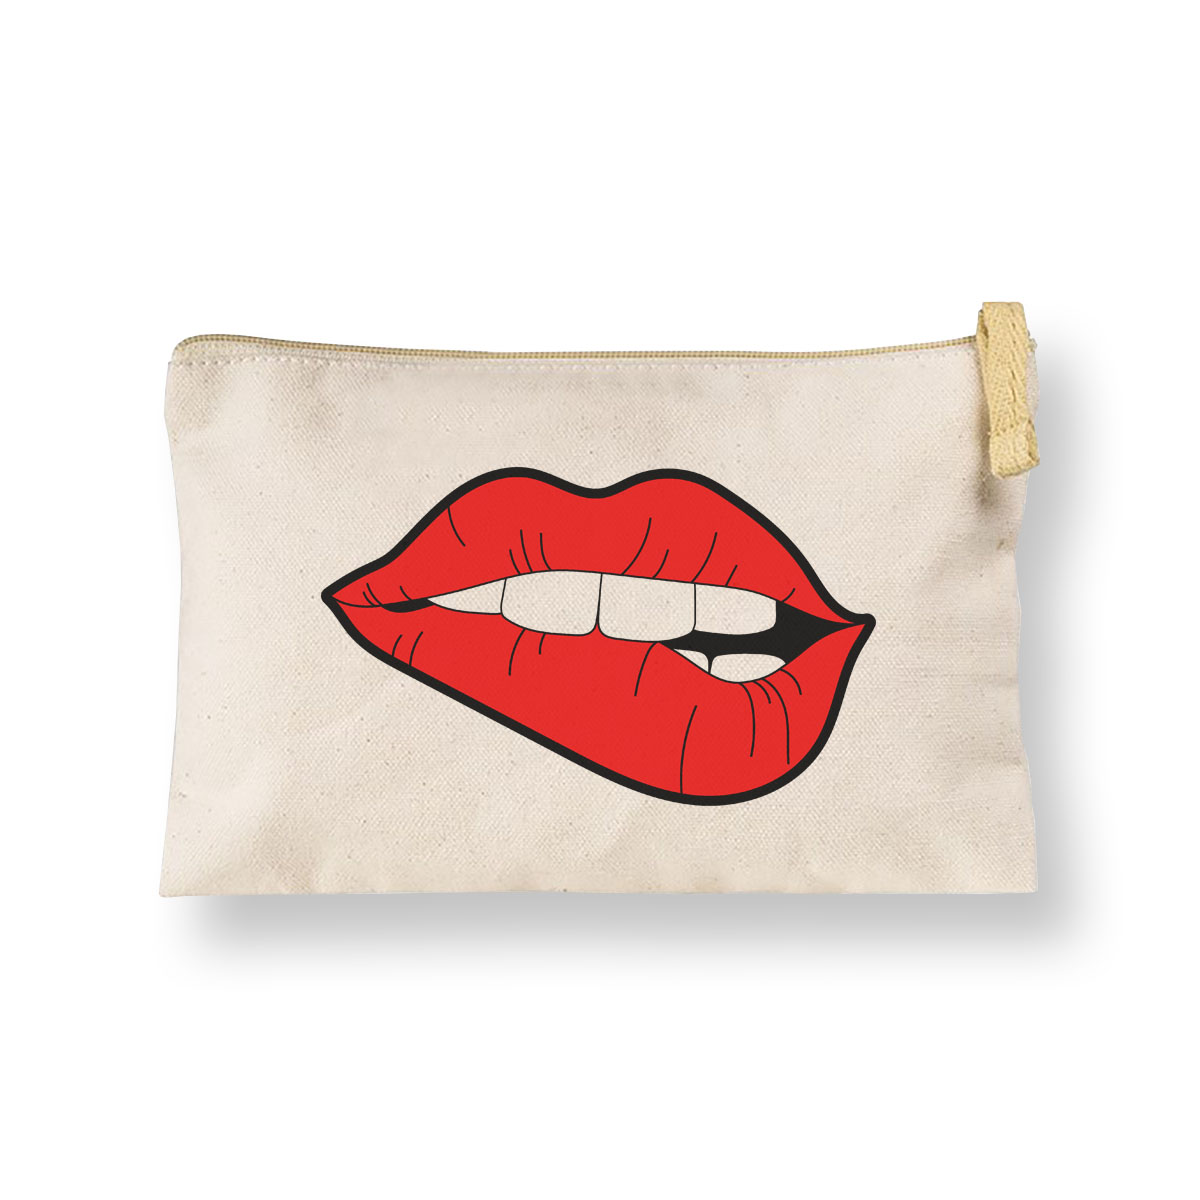 Printed canvas cosmetic bag